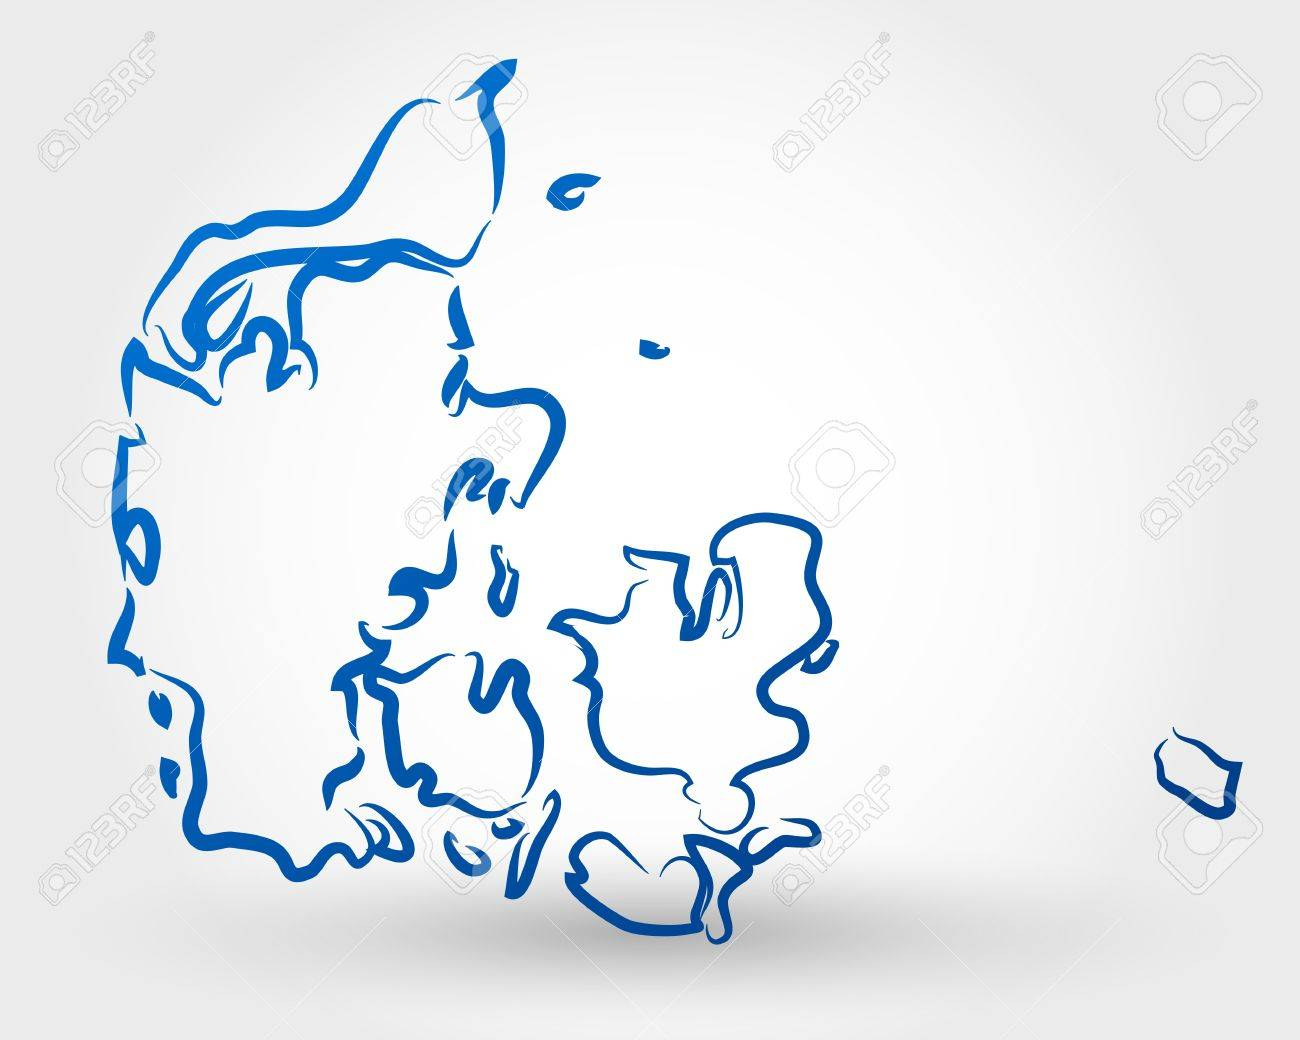 map of denmark map concept royalty free cliparts vectors and